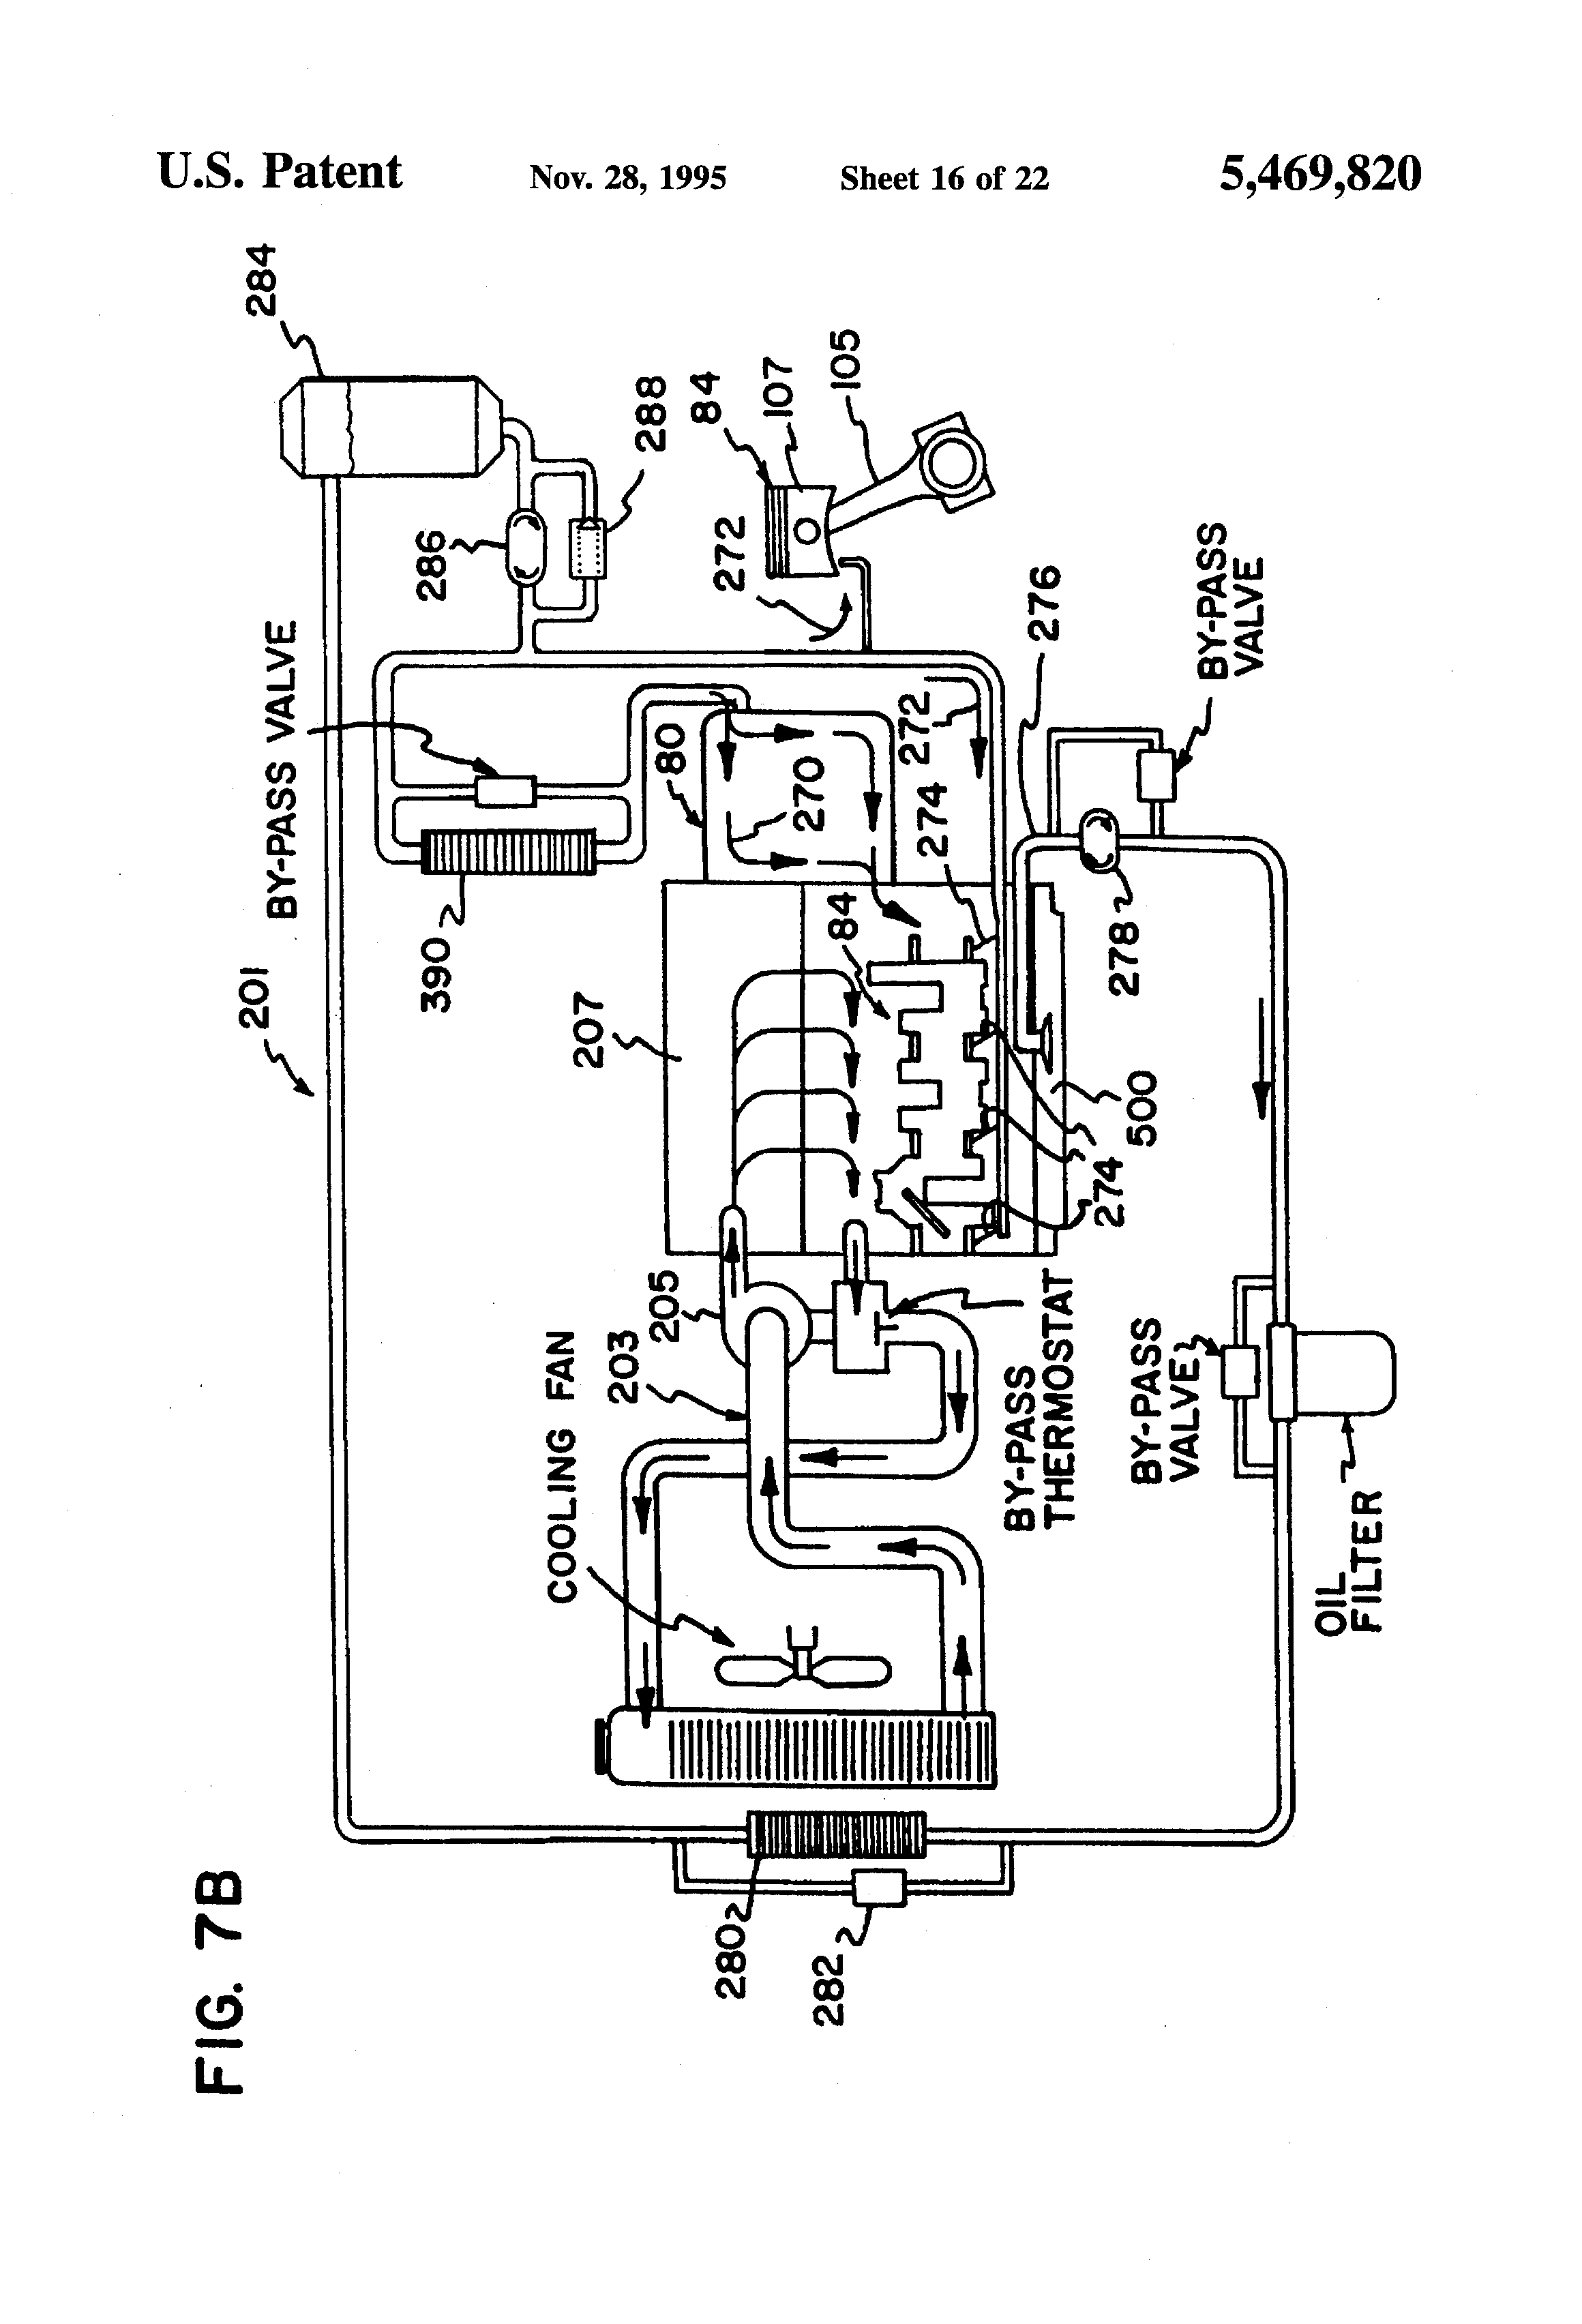 Patent Us5469820 - Auxiliary Power Unit For A Hybrid Electrical Vehicle